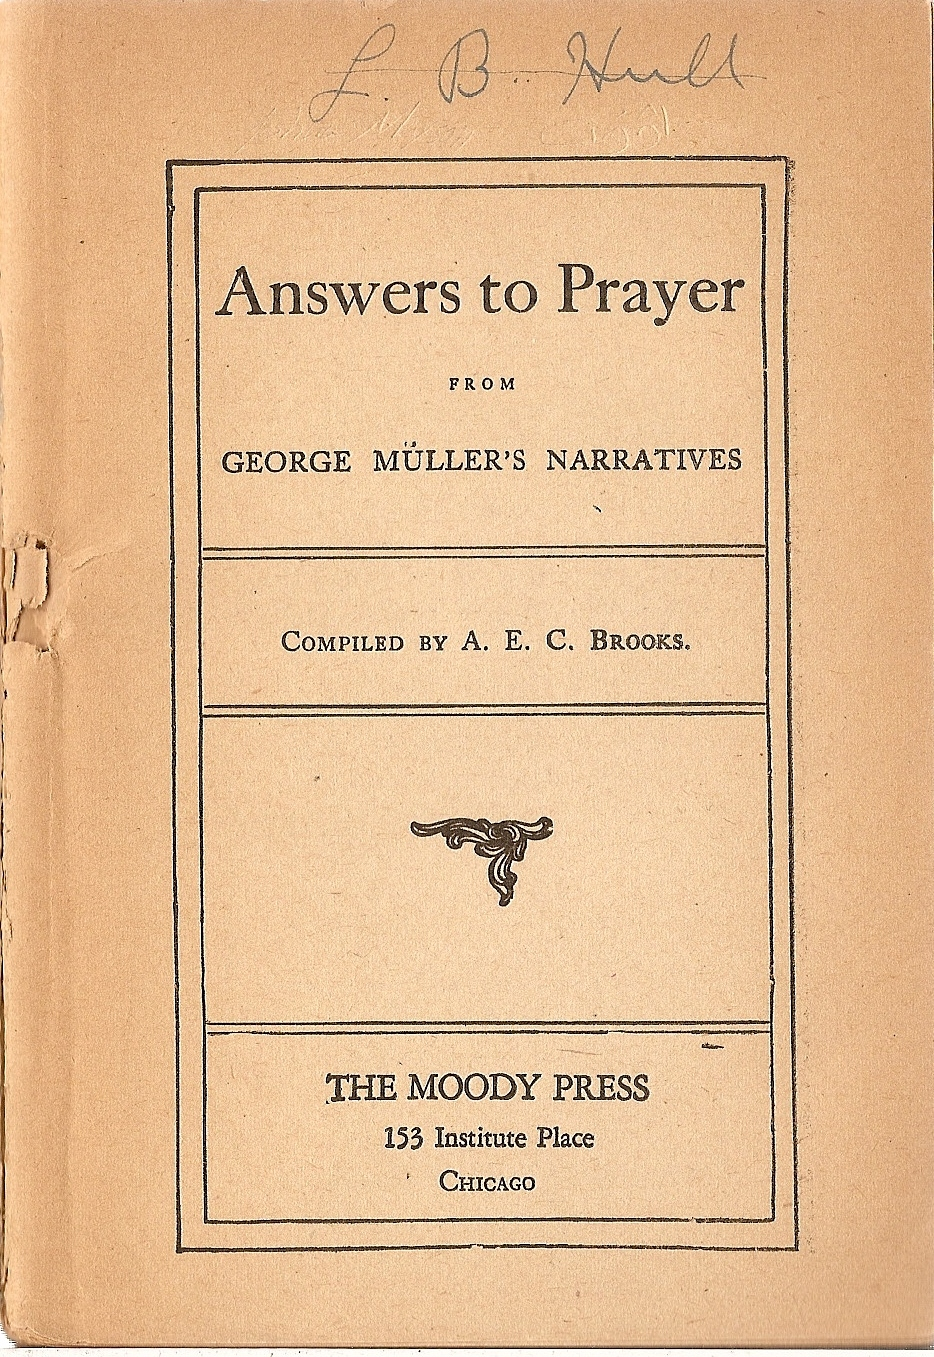 The Project Gutenberg eBook of Answers to Prayer , by George